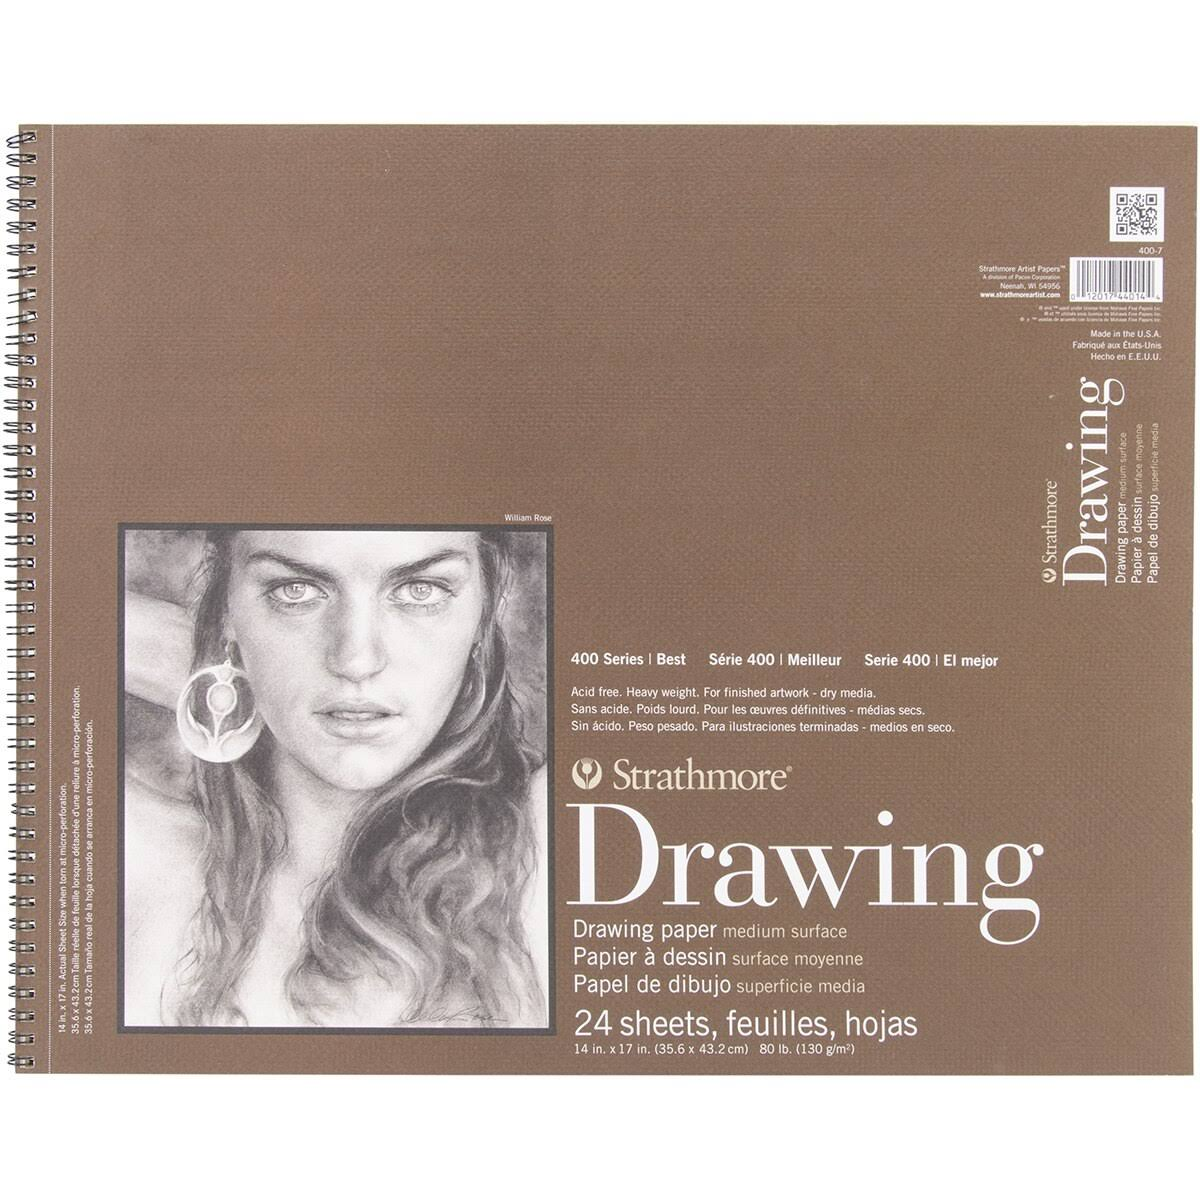 "Strathmore Drawing Medium Paper Pad - 14"" X 17"", 24 Sheets"